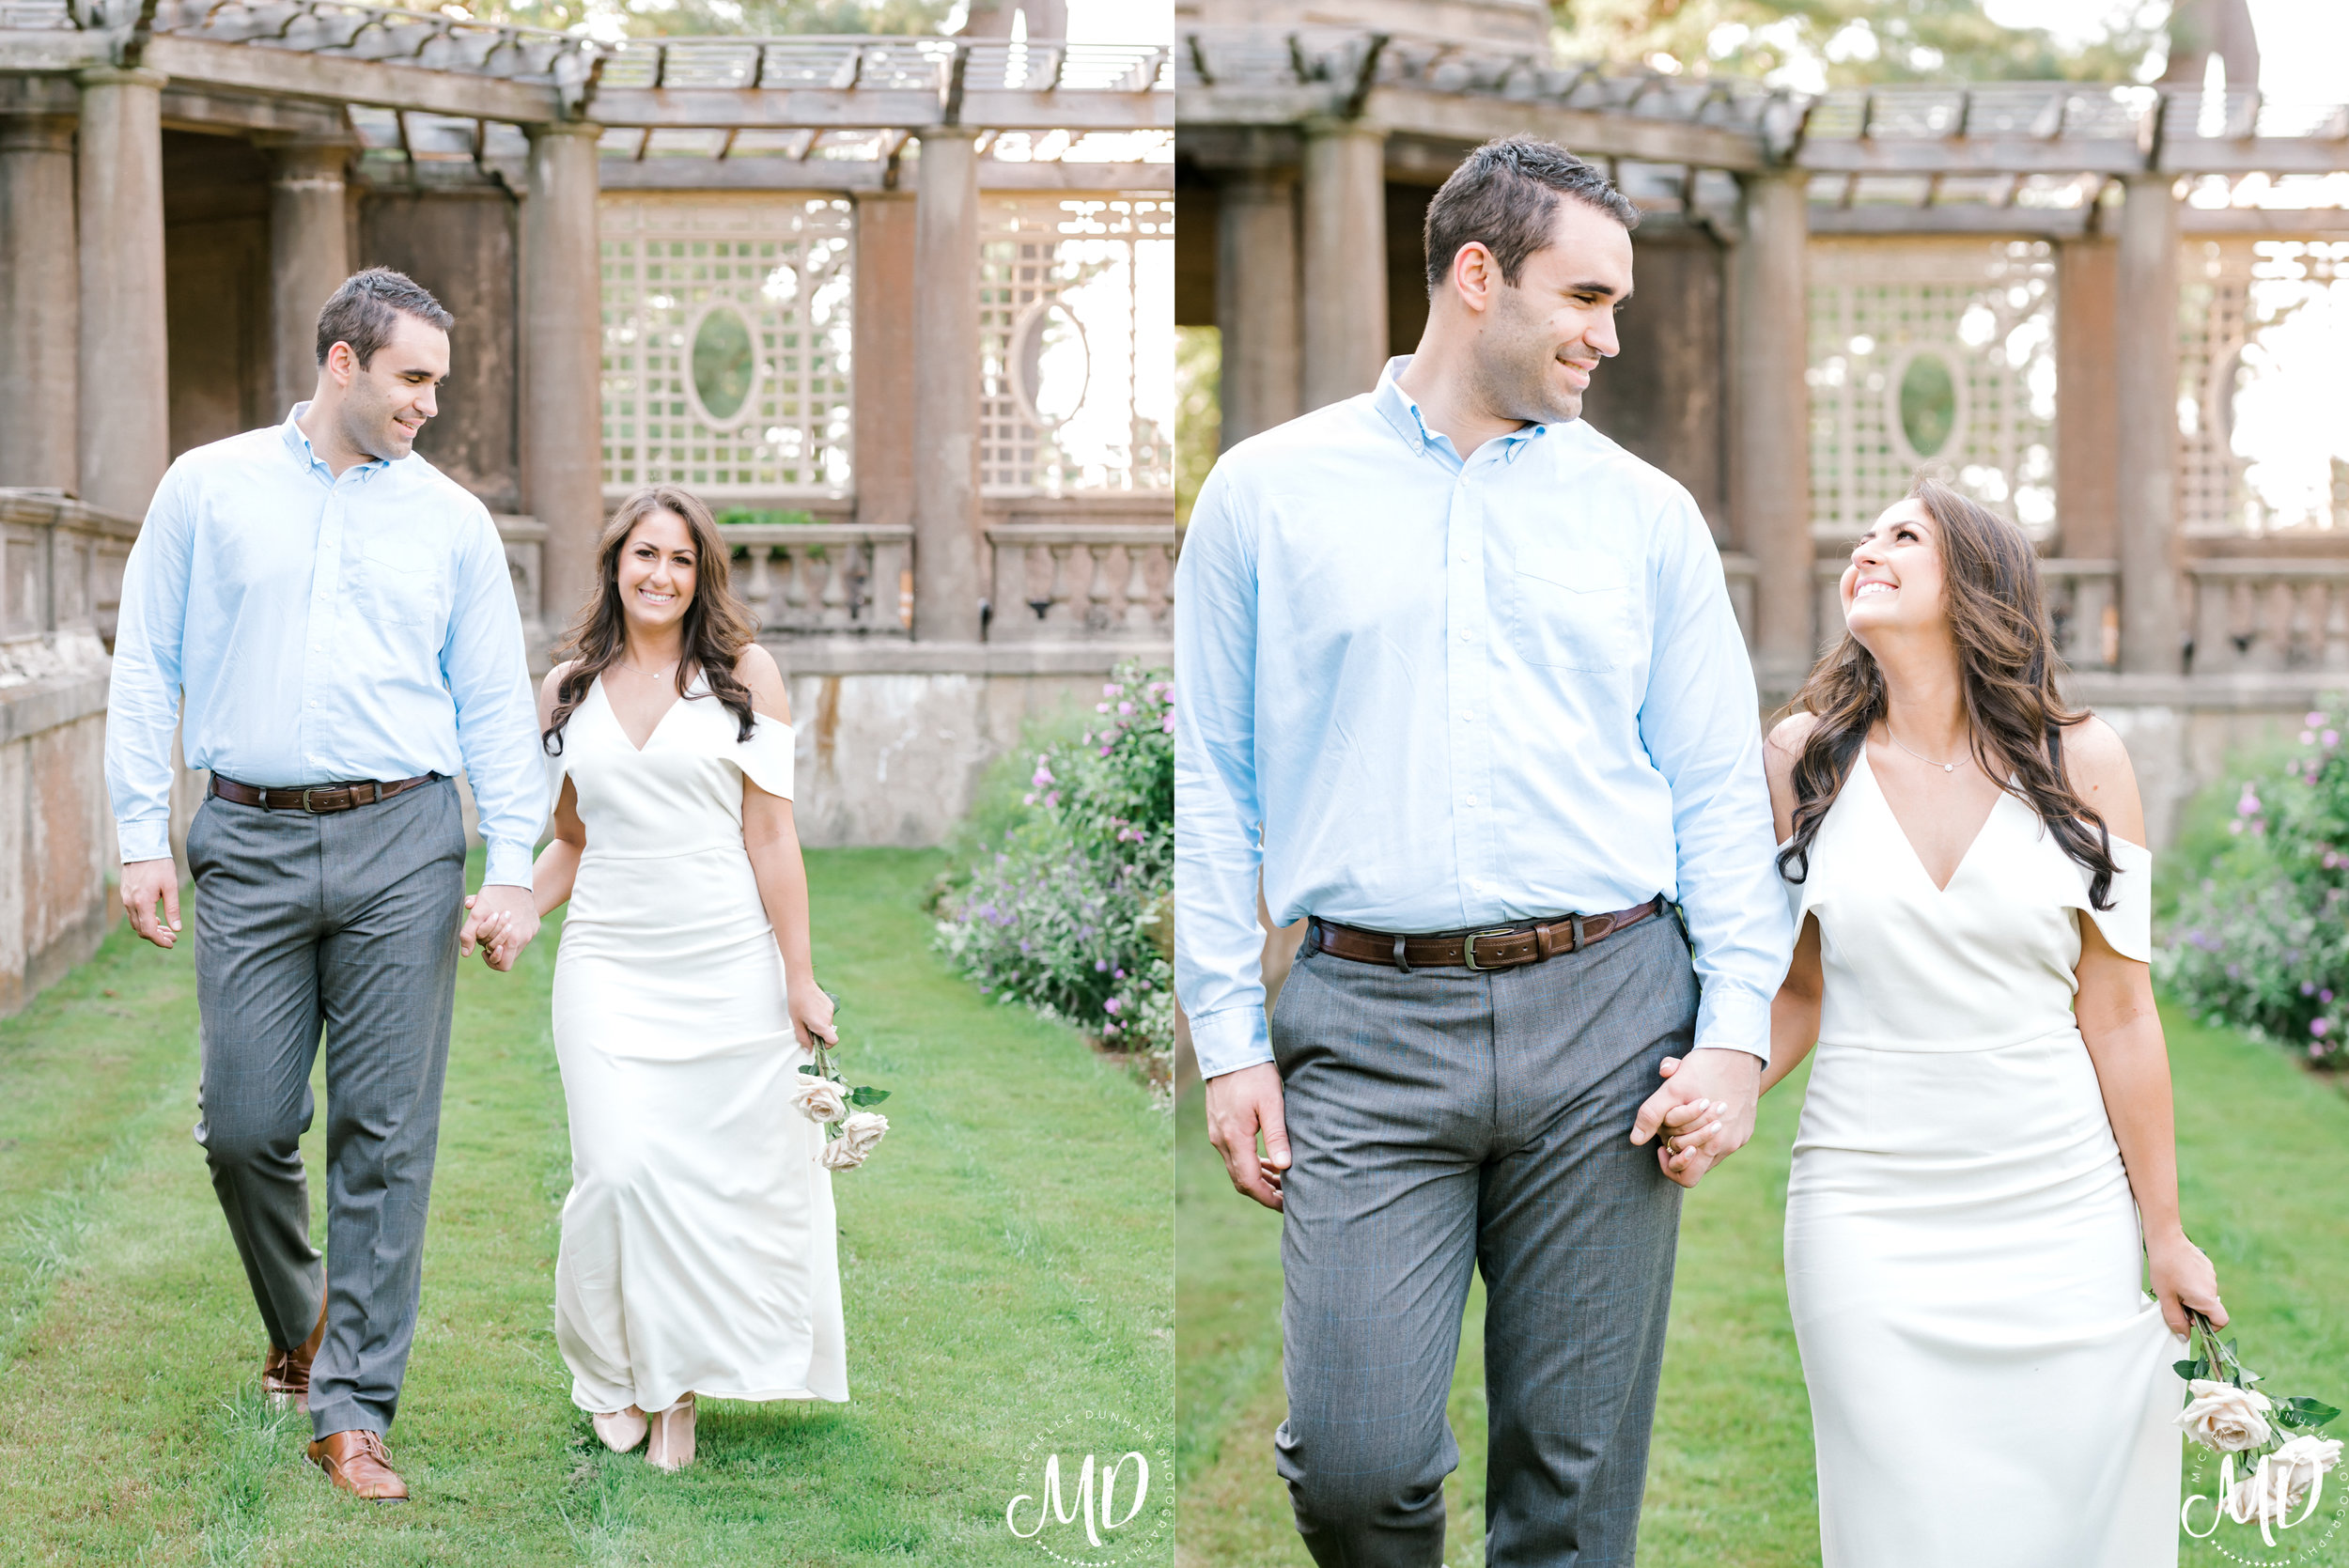 Michelle Dunham Photography-Engagement-Crane Estate-Ipswich-Alexandra and Zach-1.jpg